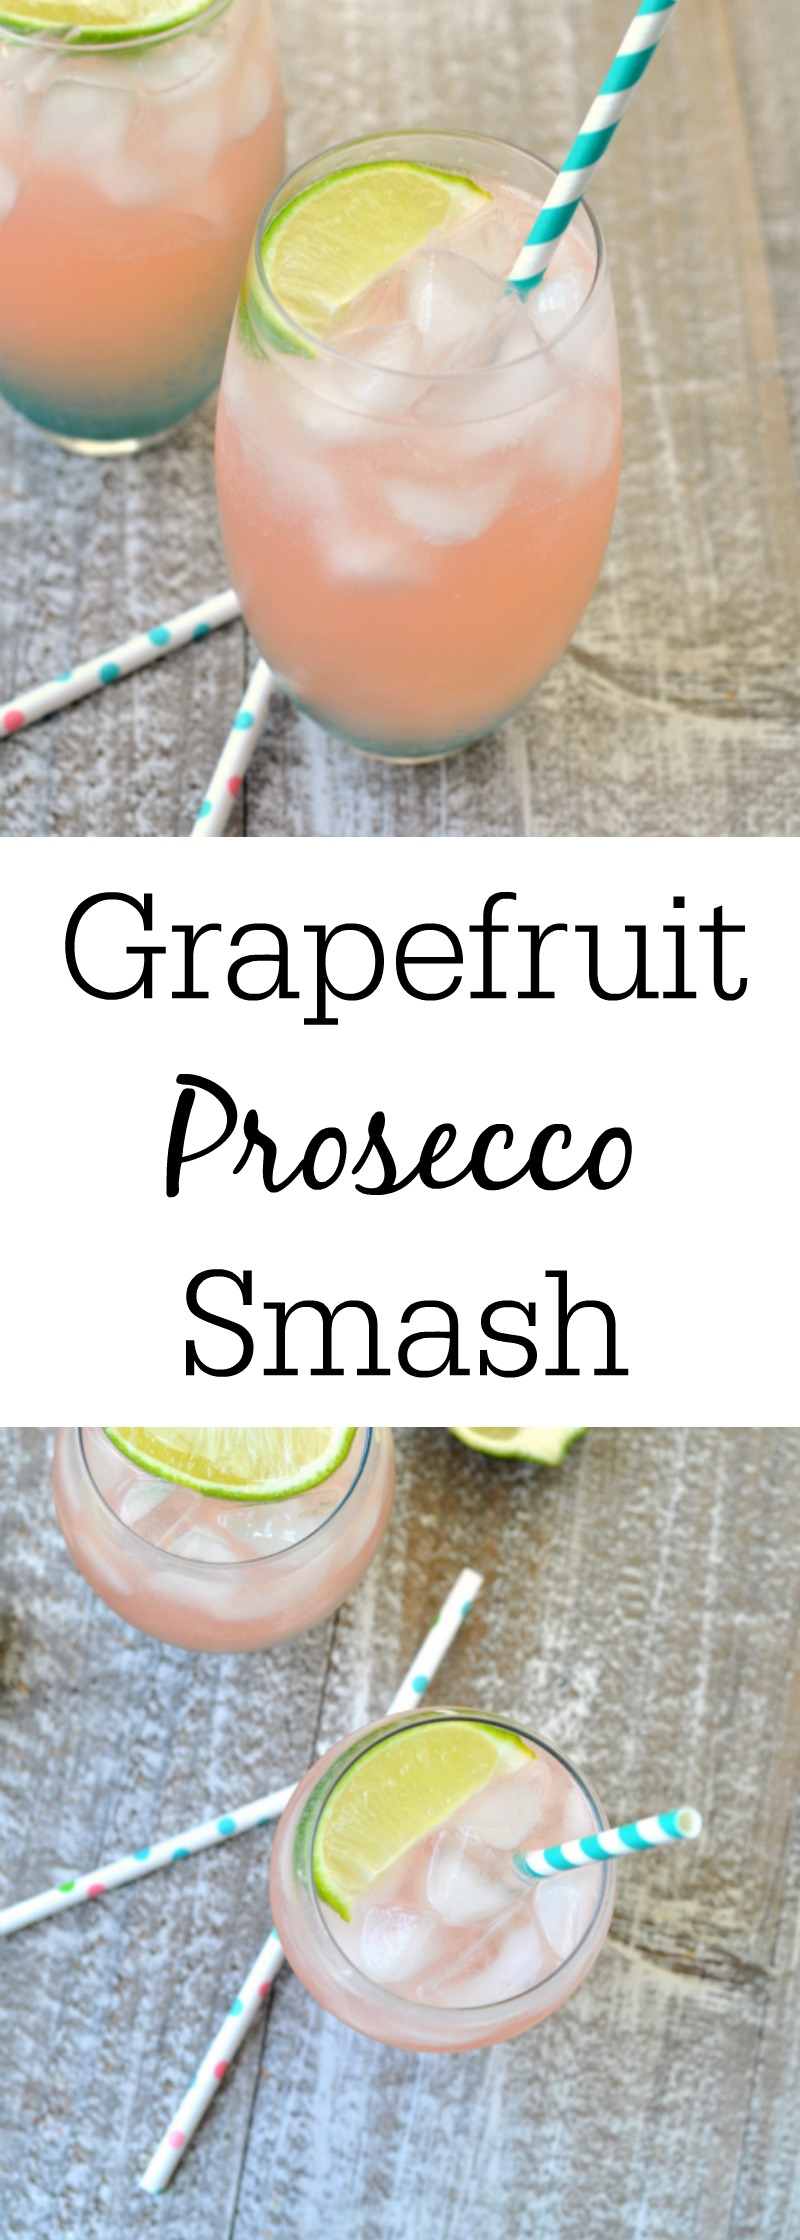 Grapefruit Prosecco Smash